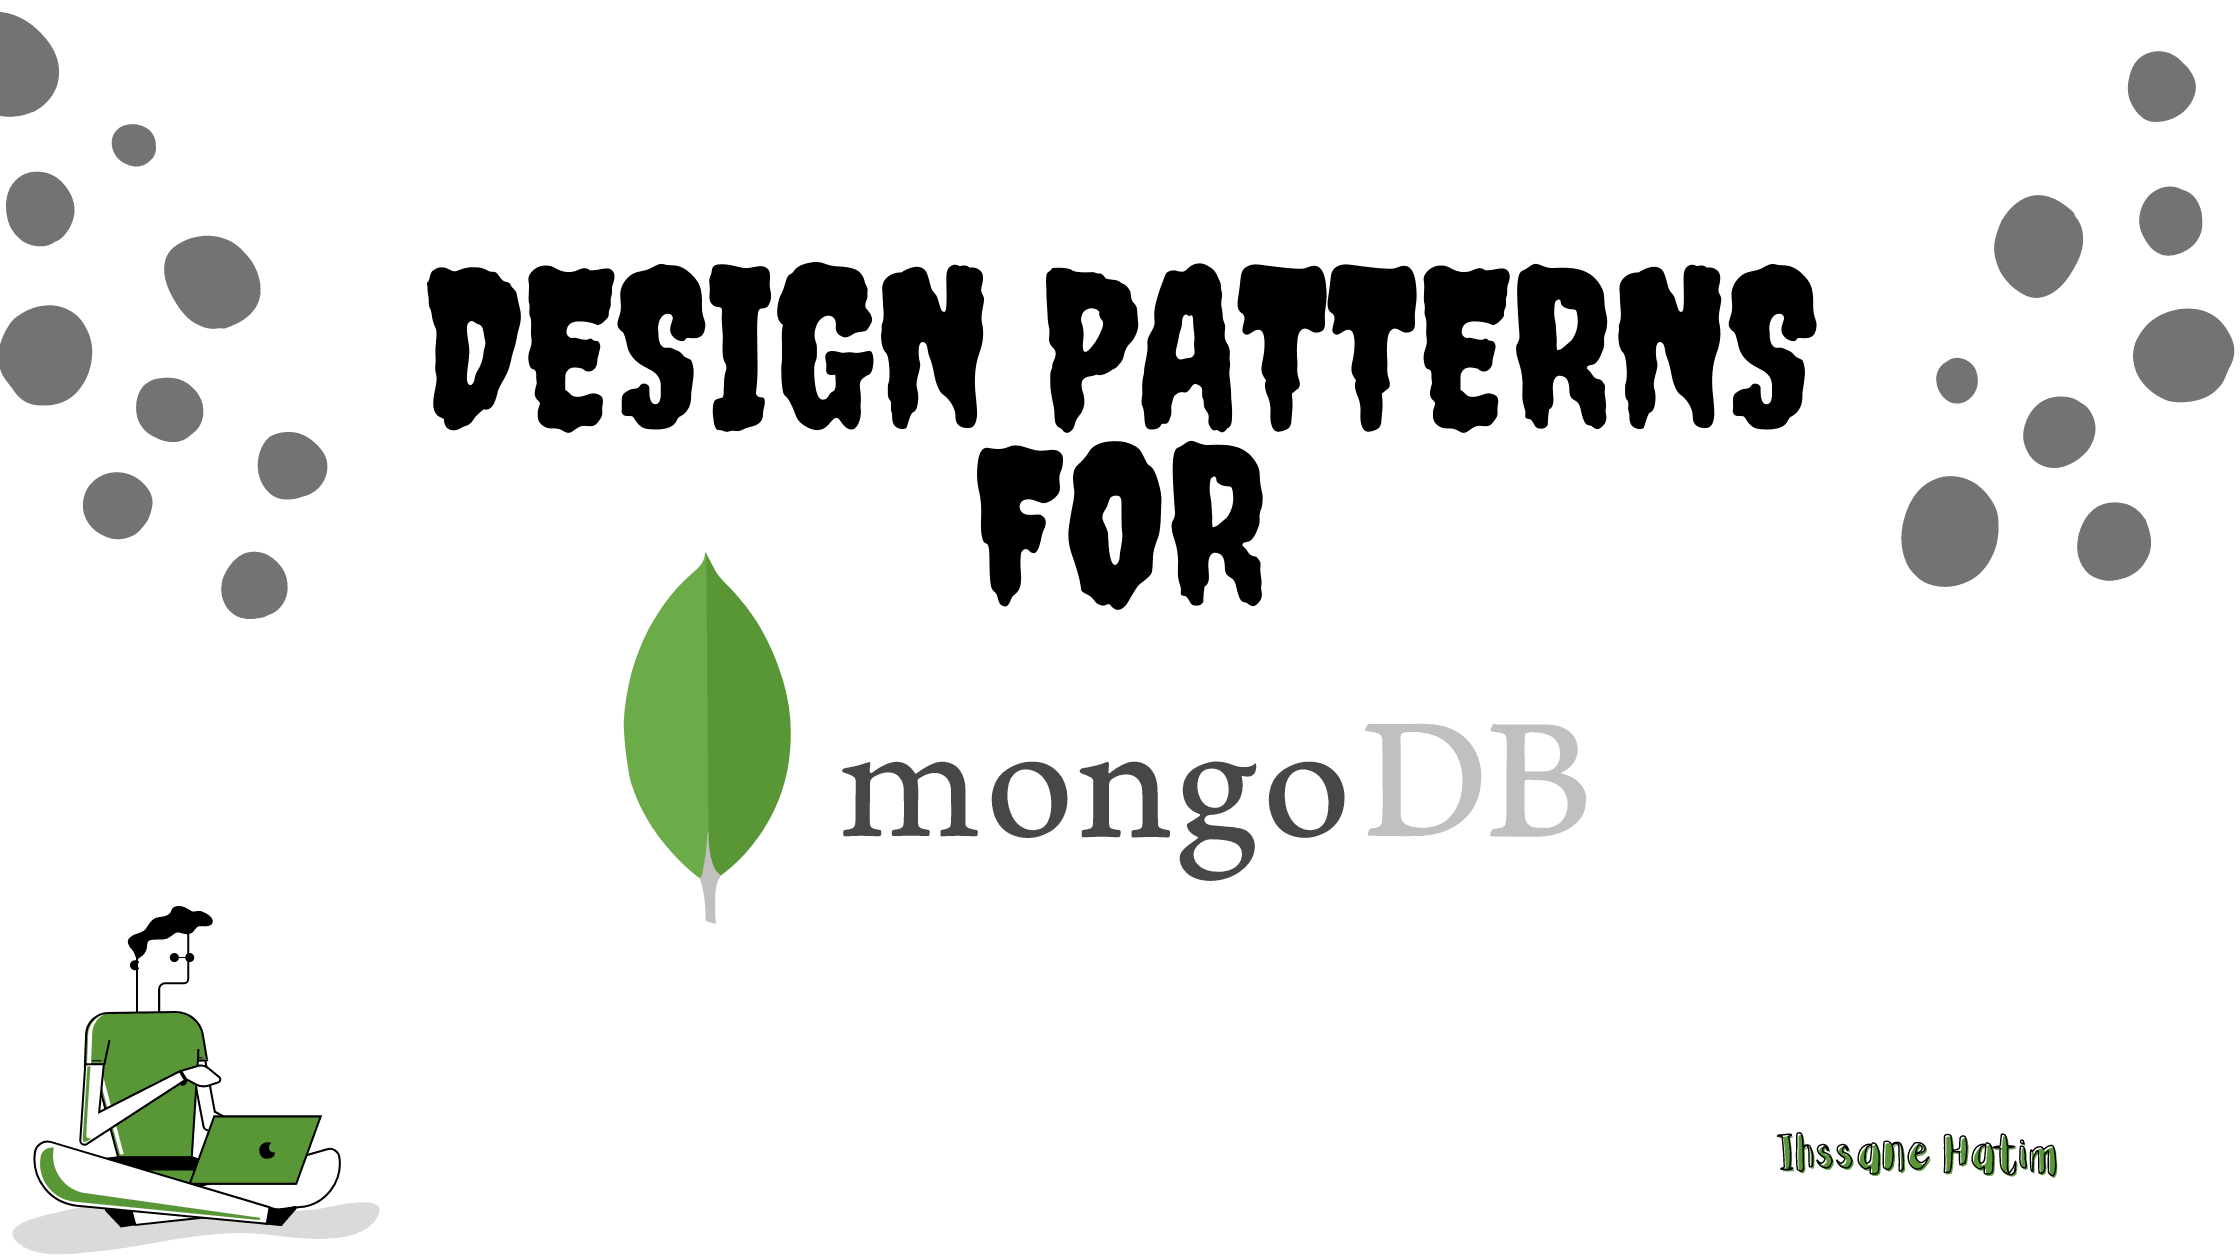 Design patterns for MongoDB